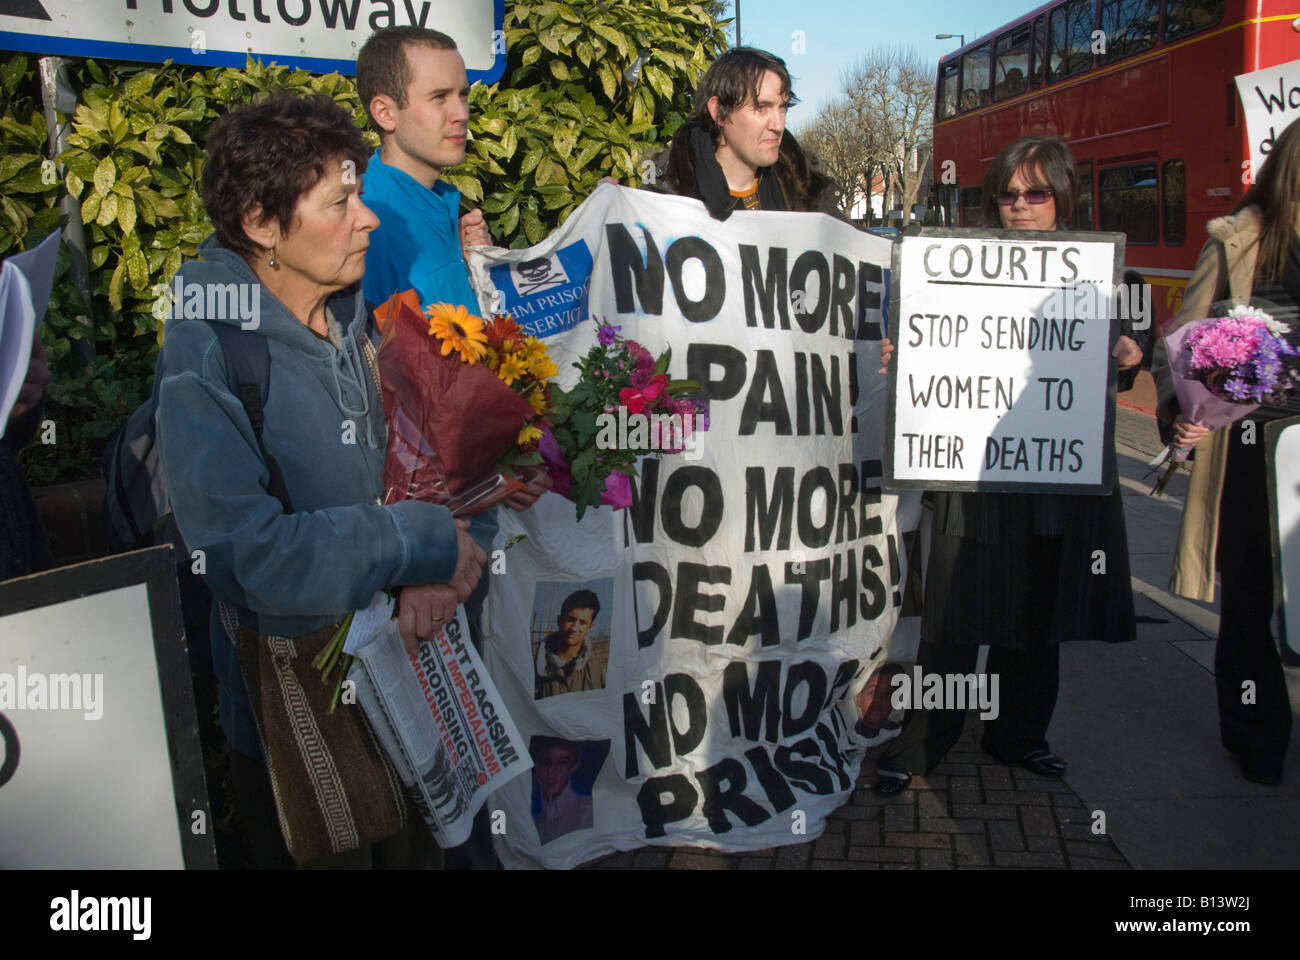 Demonstrators with flowers and placards outside Holloway prison call for no more deaths in custody. - Stock Image